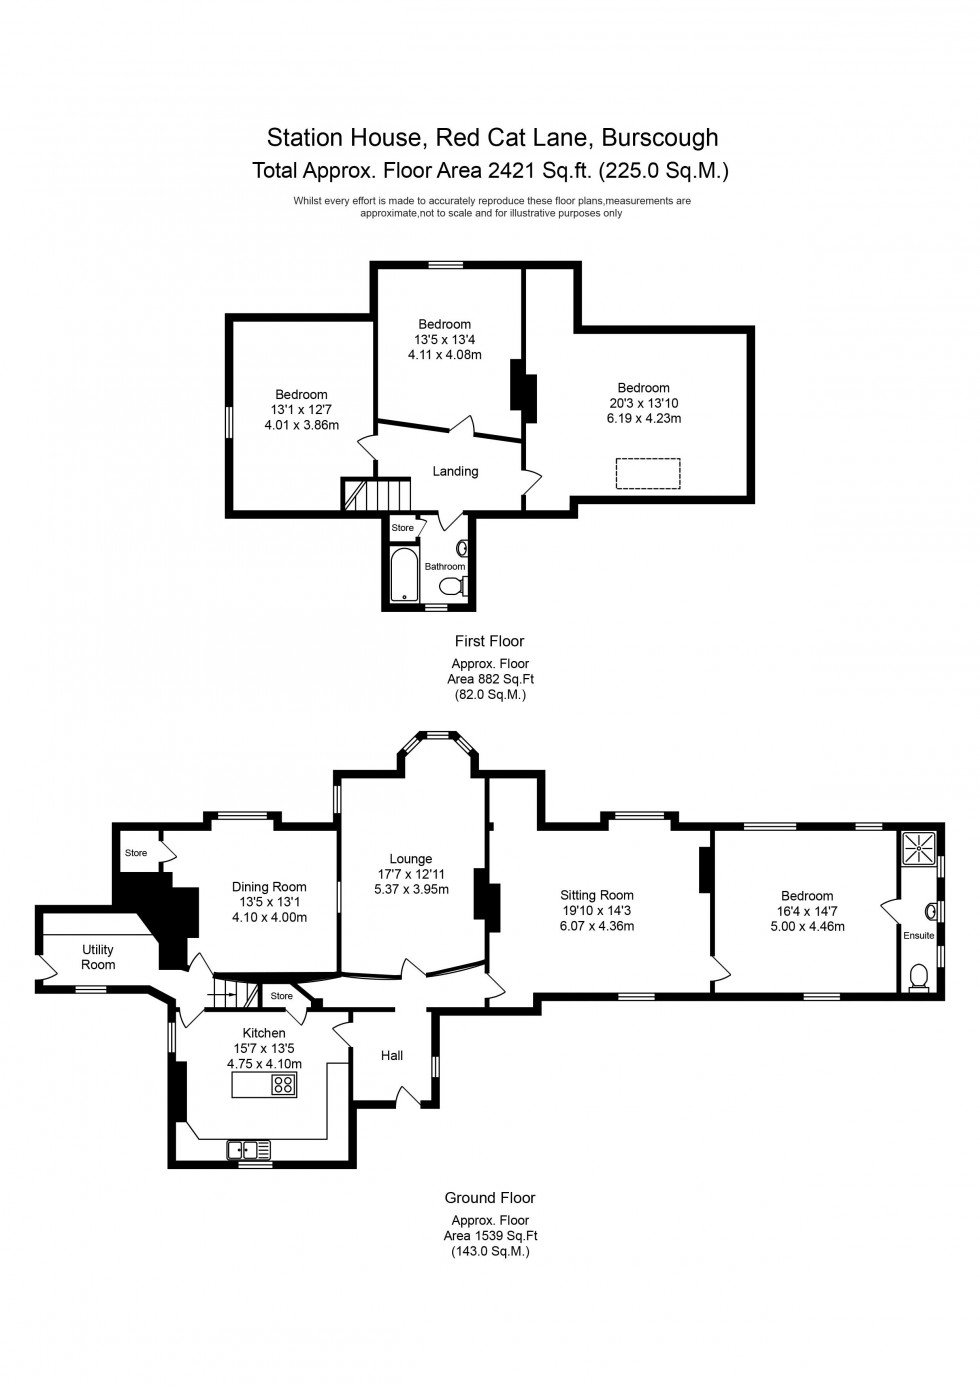 Floorplan for Red Cat Lane, Burscough